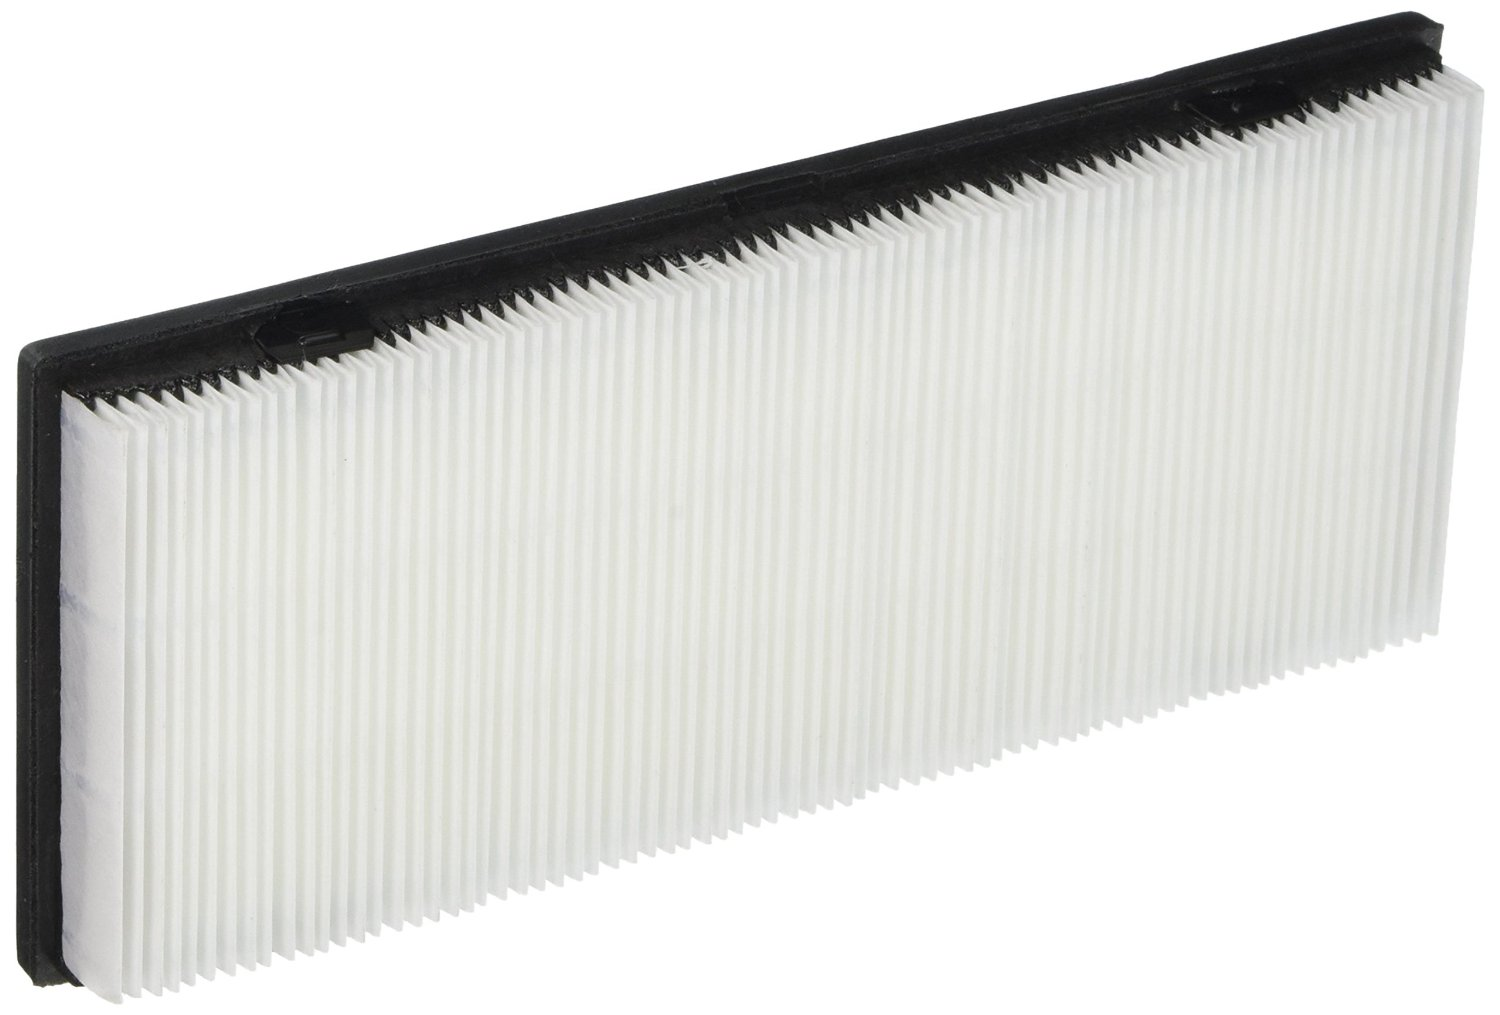 Crucial Vacuum 1 Hoover Widepath Filter, Fits Hoover Widepath, Powermax, Bagless and Turbopower 3000 Uprights, Part No.43613-026, 40110008